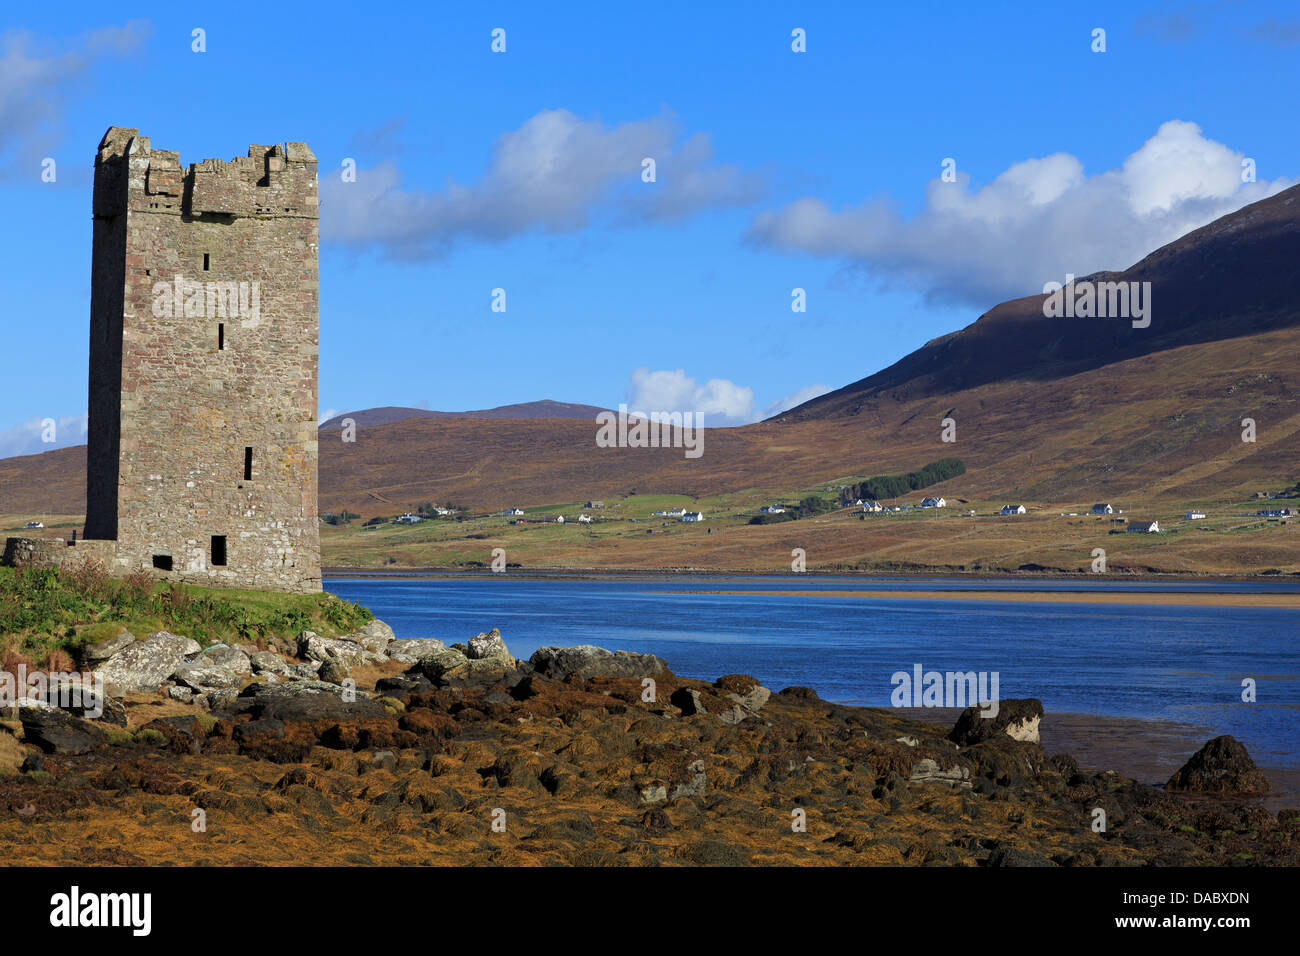 Kildownet Castle on Achill Island, County Mayo, Connaught (Connacht), Republic of Ireland, Europe - Stock Image